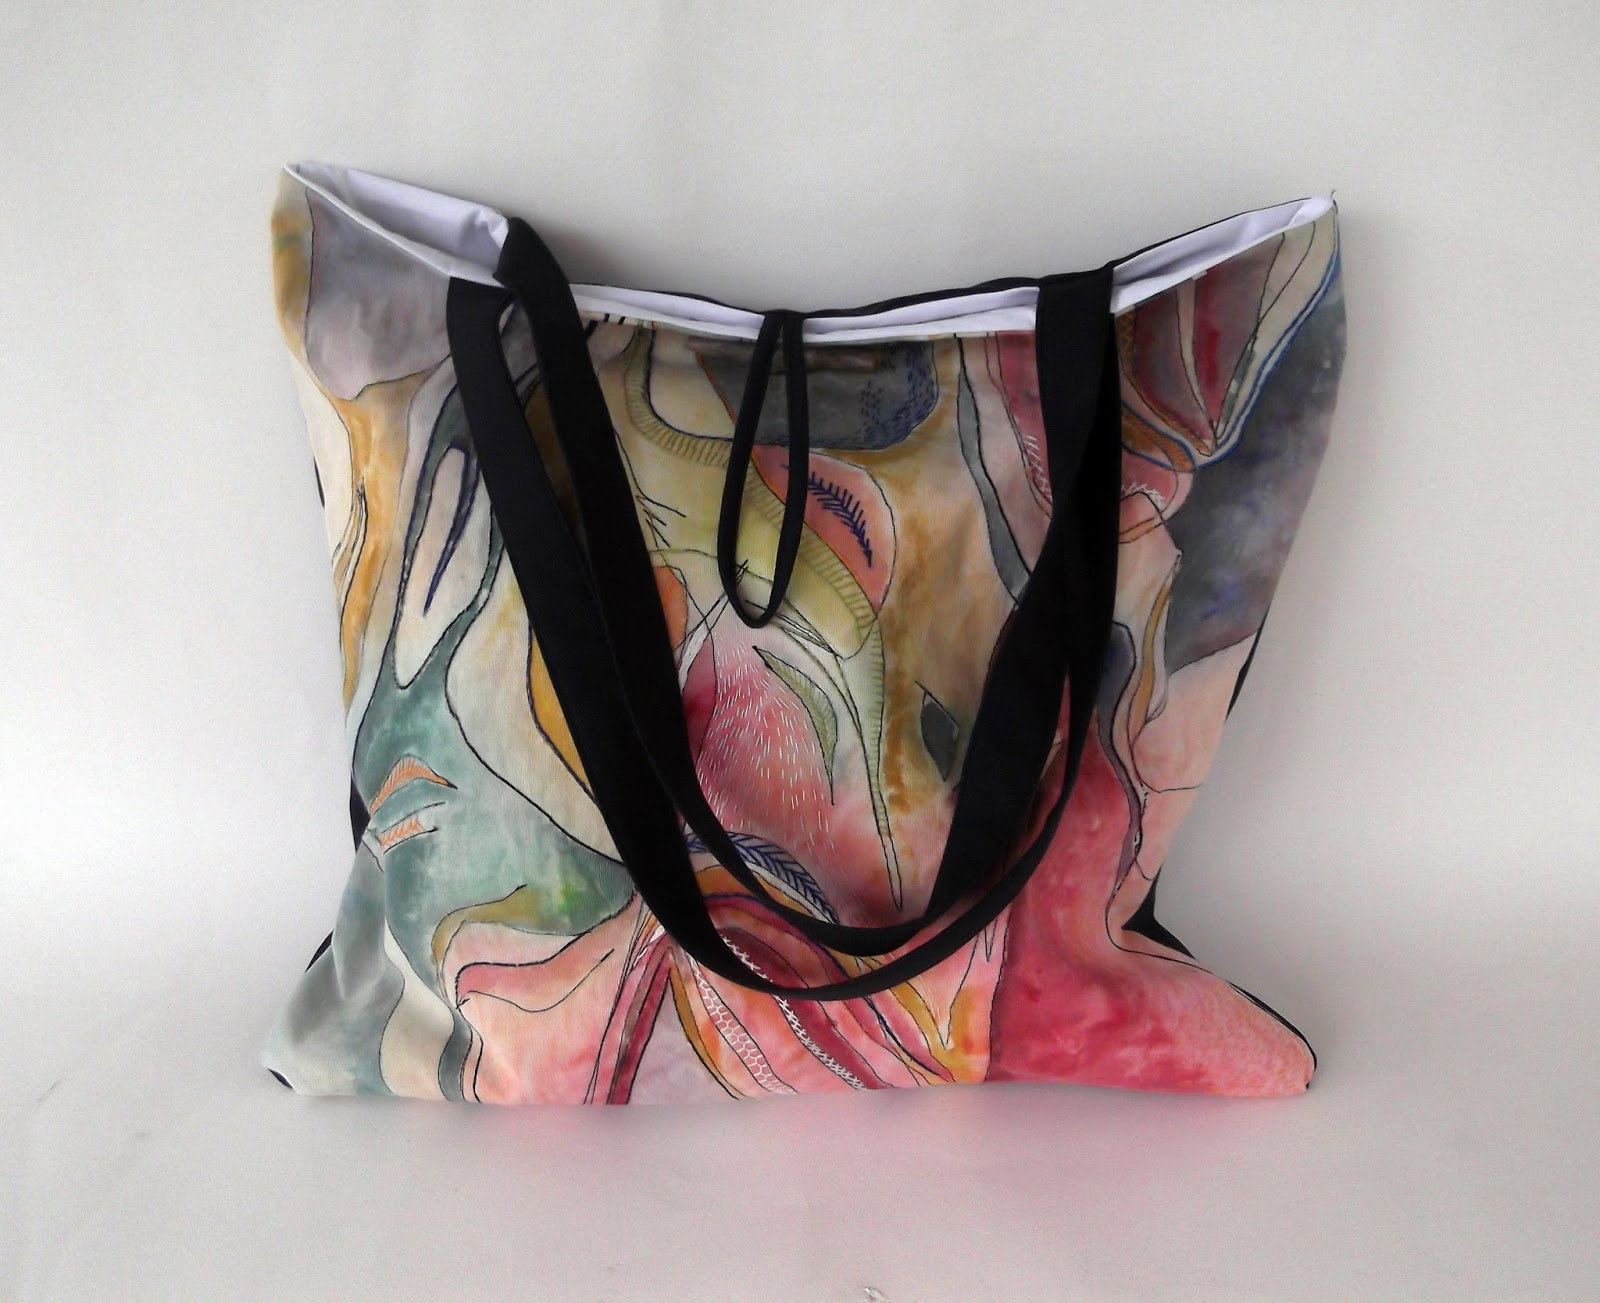 Hand painted bag, hand painted fabric, embroidery and bag, how to make a tote bag, bag tutorial, bag instructions, bag patterns